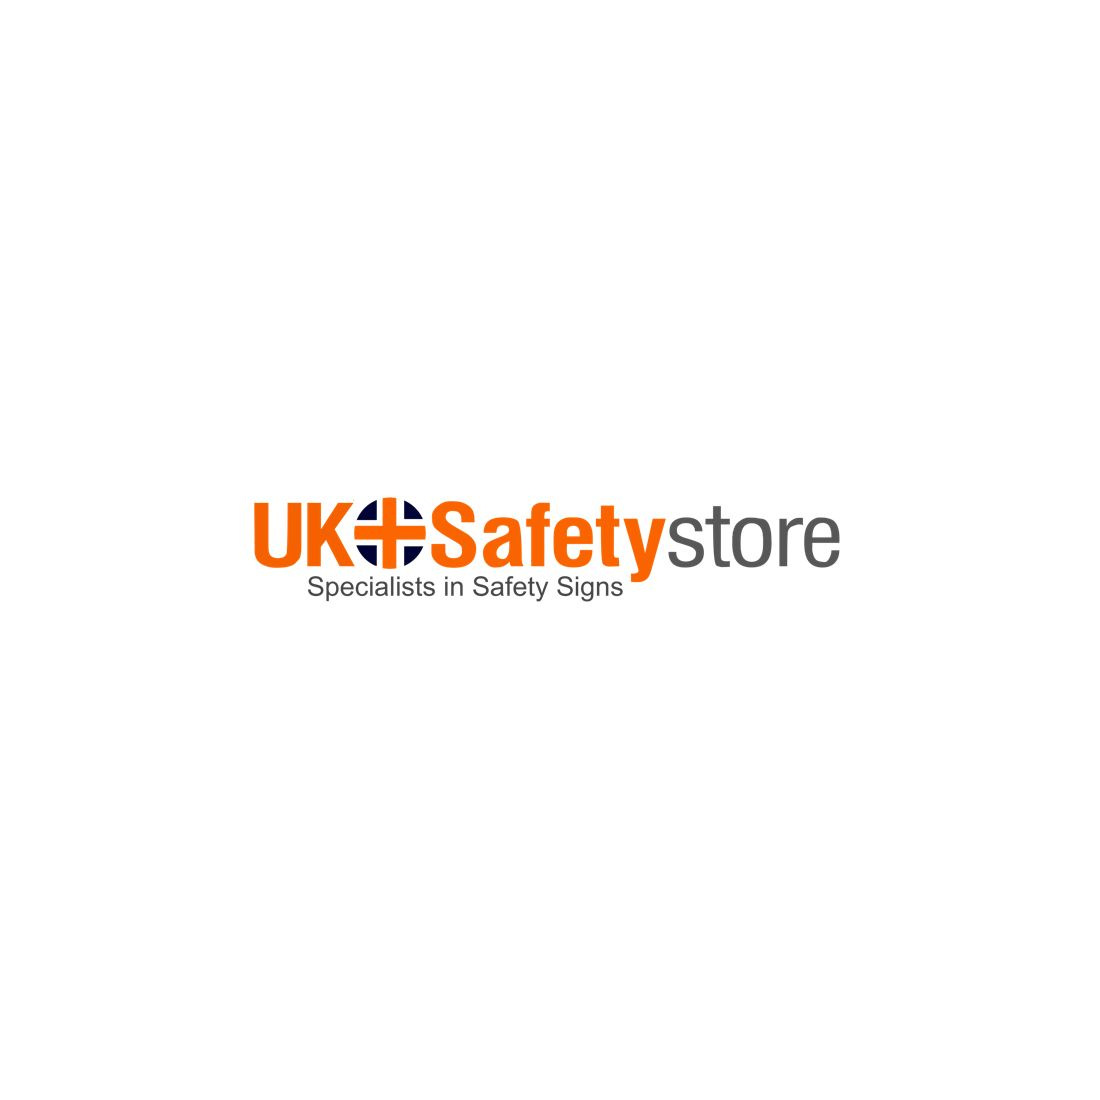 UK Dangerous Jobs Infographic UK Safety Store